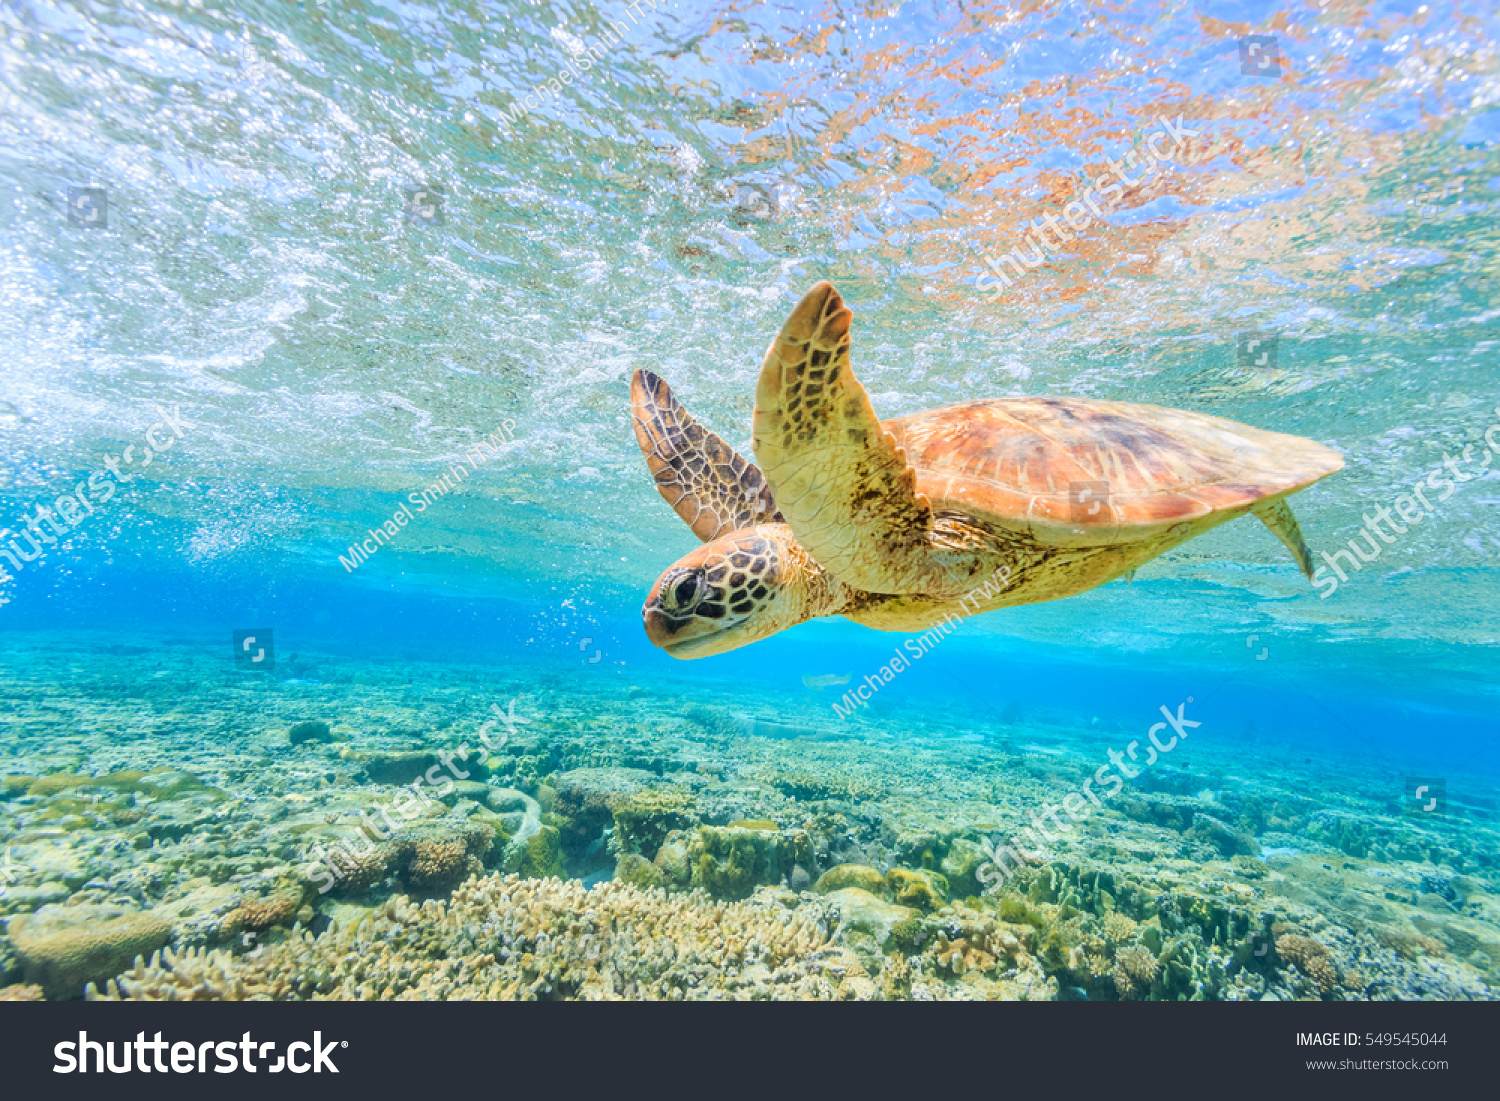 A turtle diving back to the reef in a shallow lagoon on Lady Elliot Island #549545044